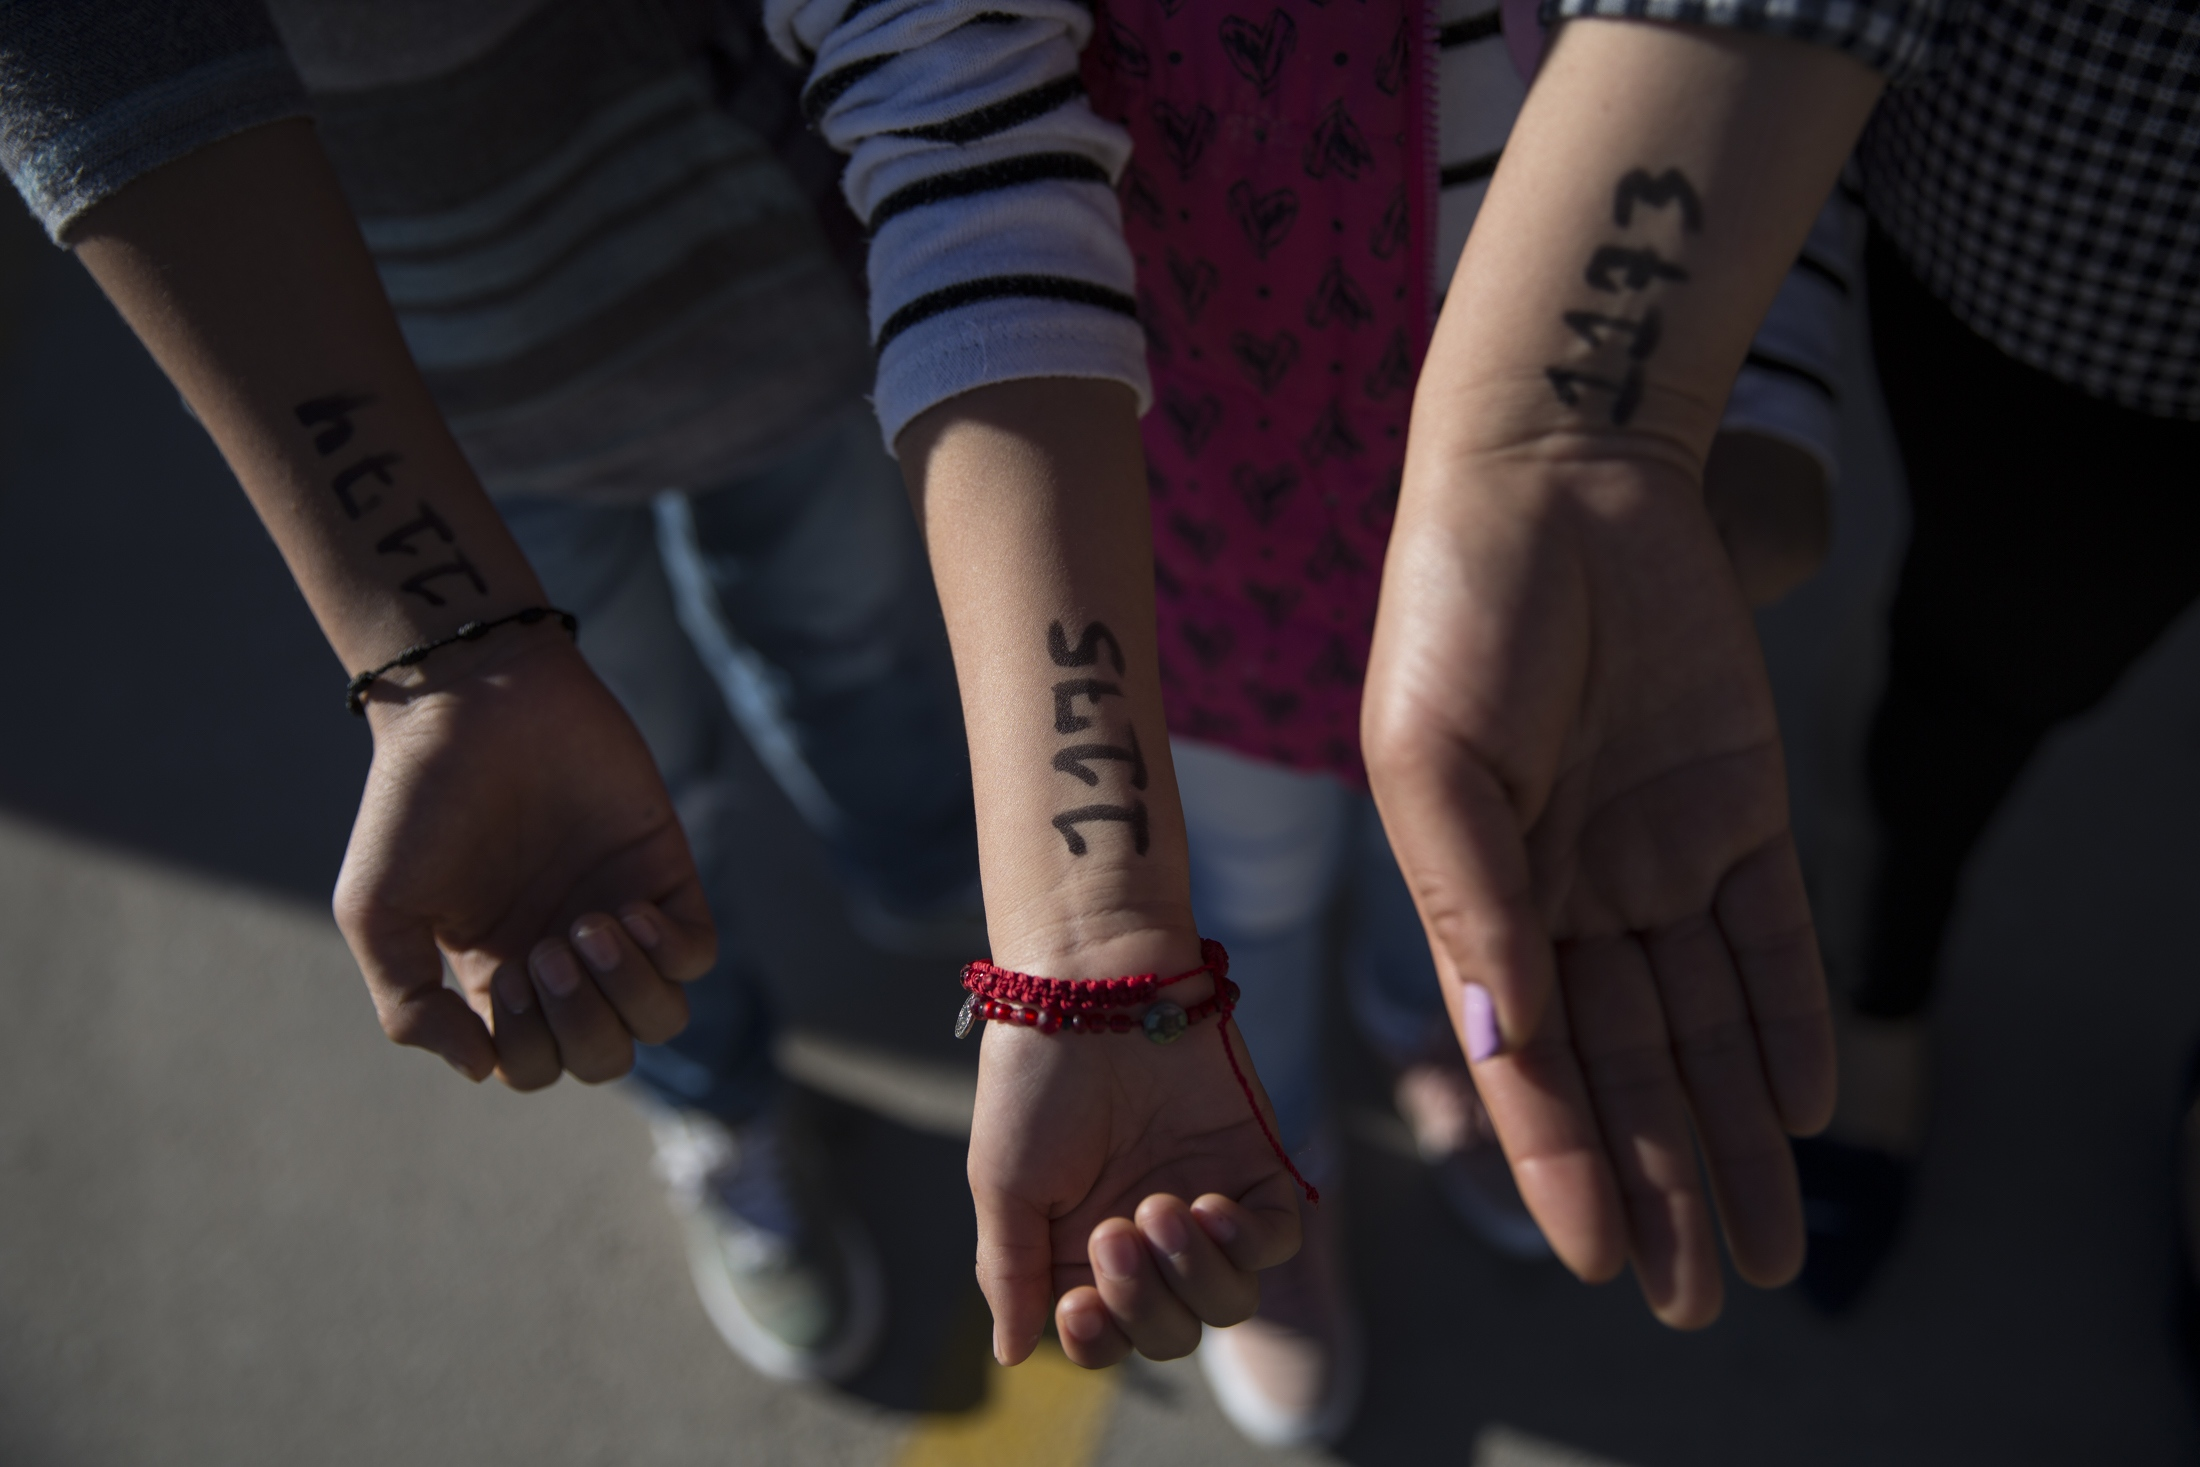 "A Mexican mother and her two children hold out their arms to show the numbers they were given to be on a list at Casa Del Migrante in Juárez, Mexico to seek political asylum in the United States on November 28, 2018. The shelter can house 280 people at a time. It was full on Wednesday when Lorena arrived. Her and her children were assigned the numbers 1173, 1174 and 1175 and written on the inside of their wrists. The list was nearing 1,100. Lorena's  brother, who owned a business and refused to pay ""quotas"" to the cartels, was killed. Immediately after, the man responsible for his killing began threatening her and her children."